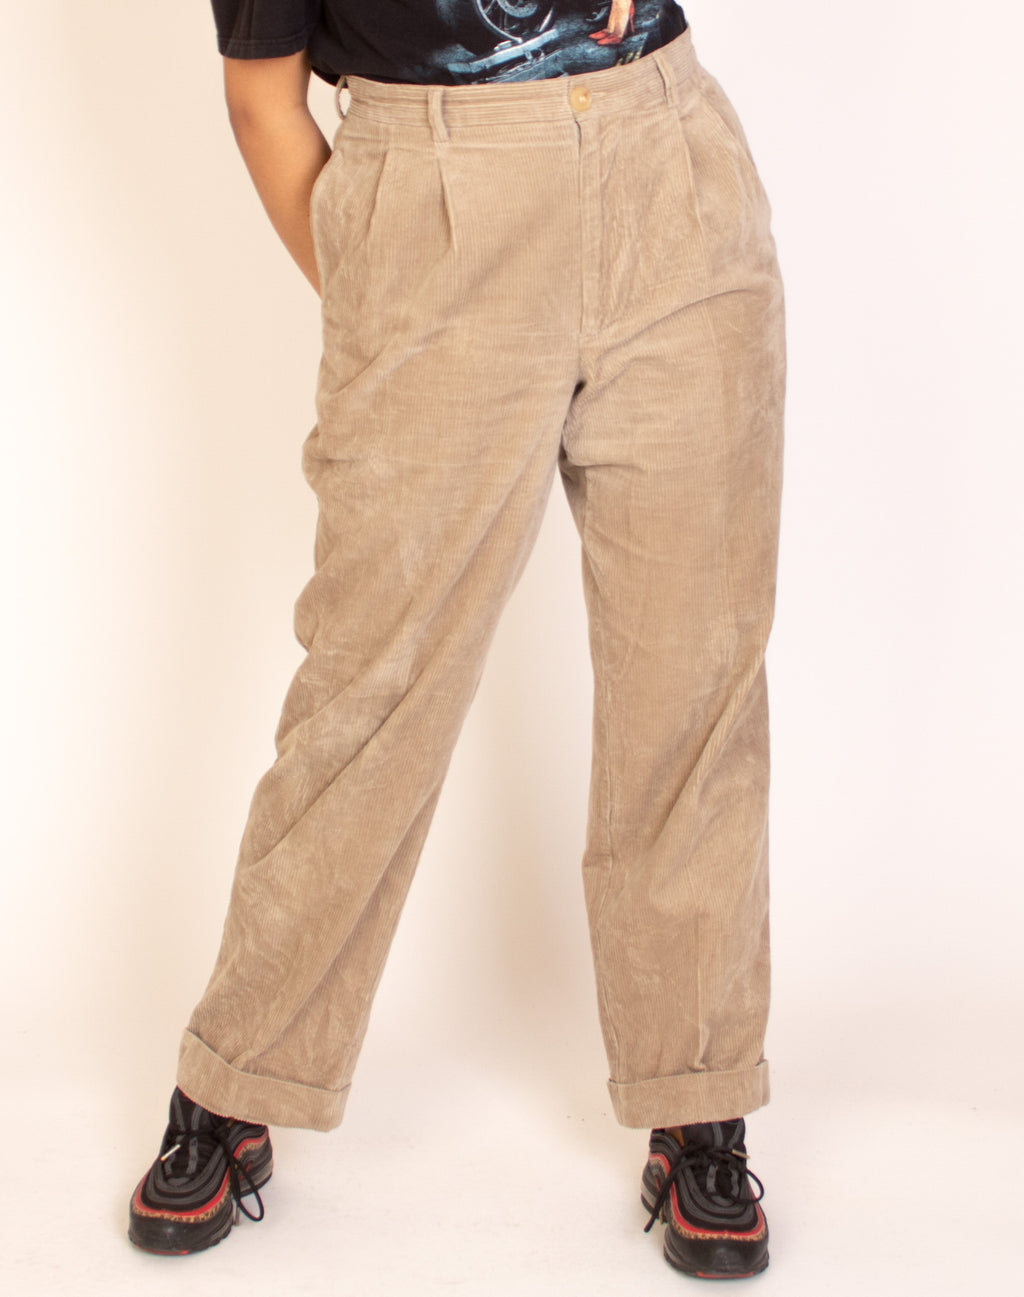 HIGH WAIST SAND CORDUROY TROUSERS